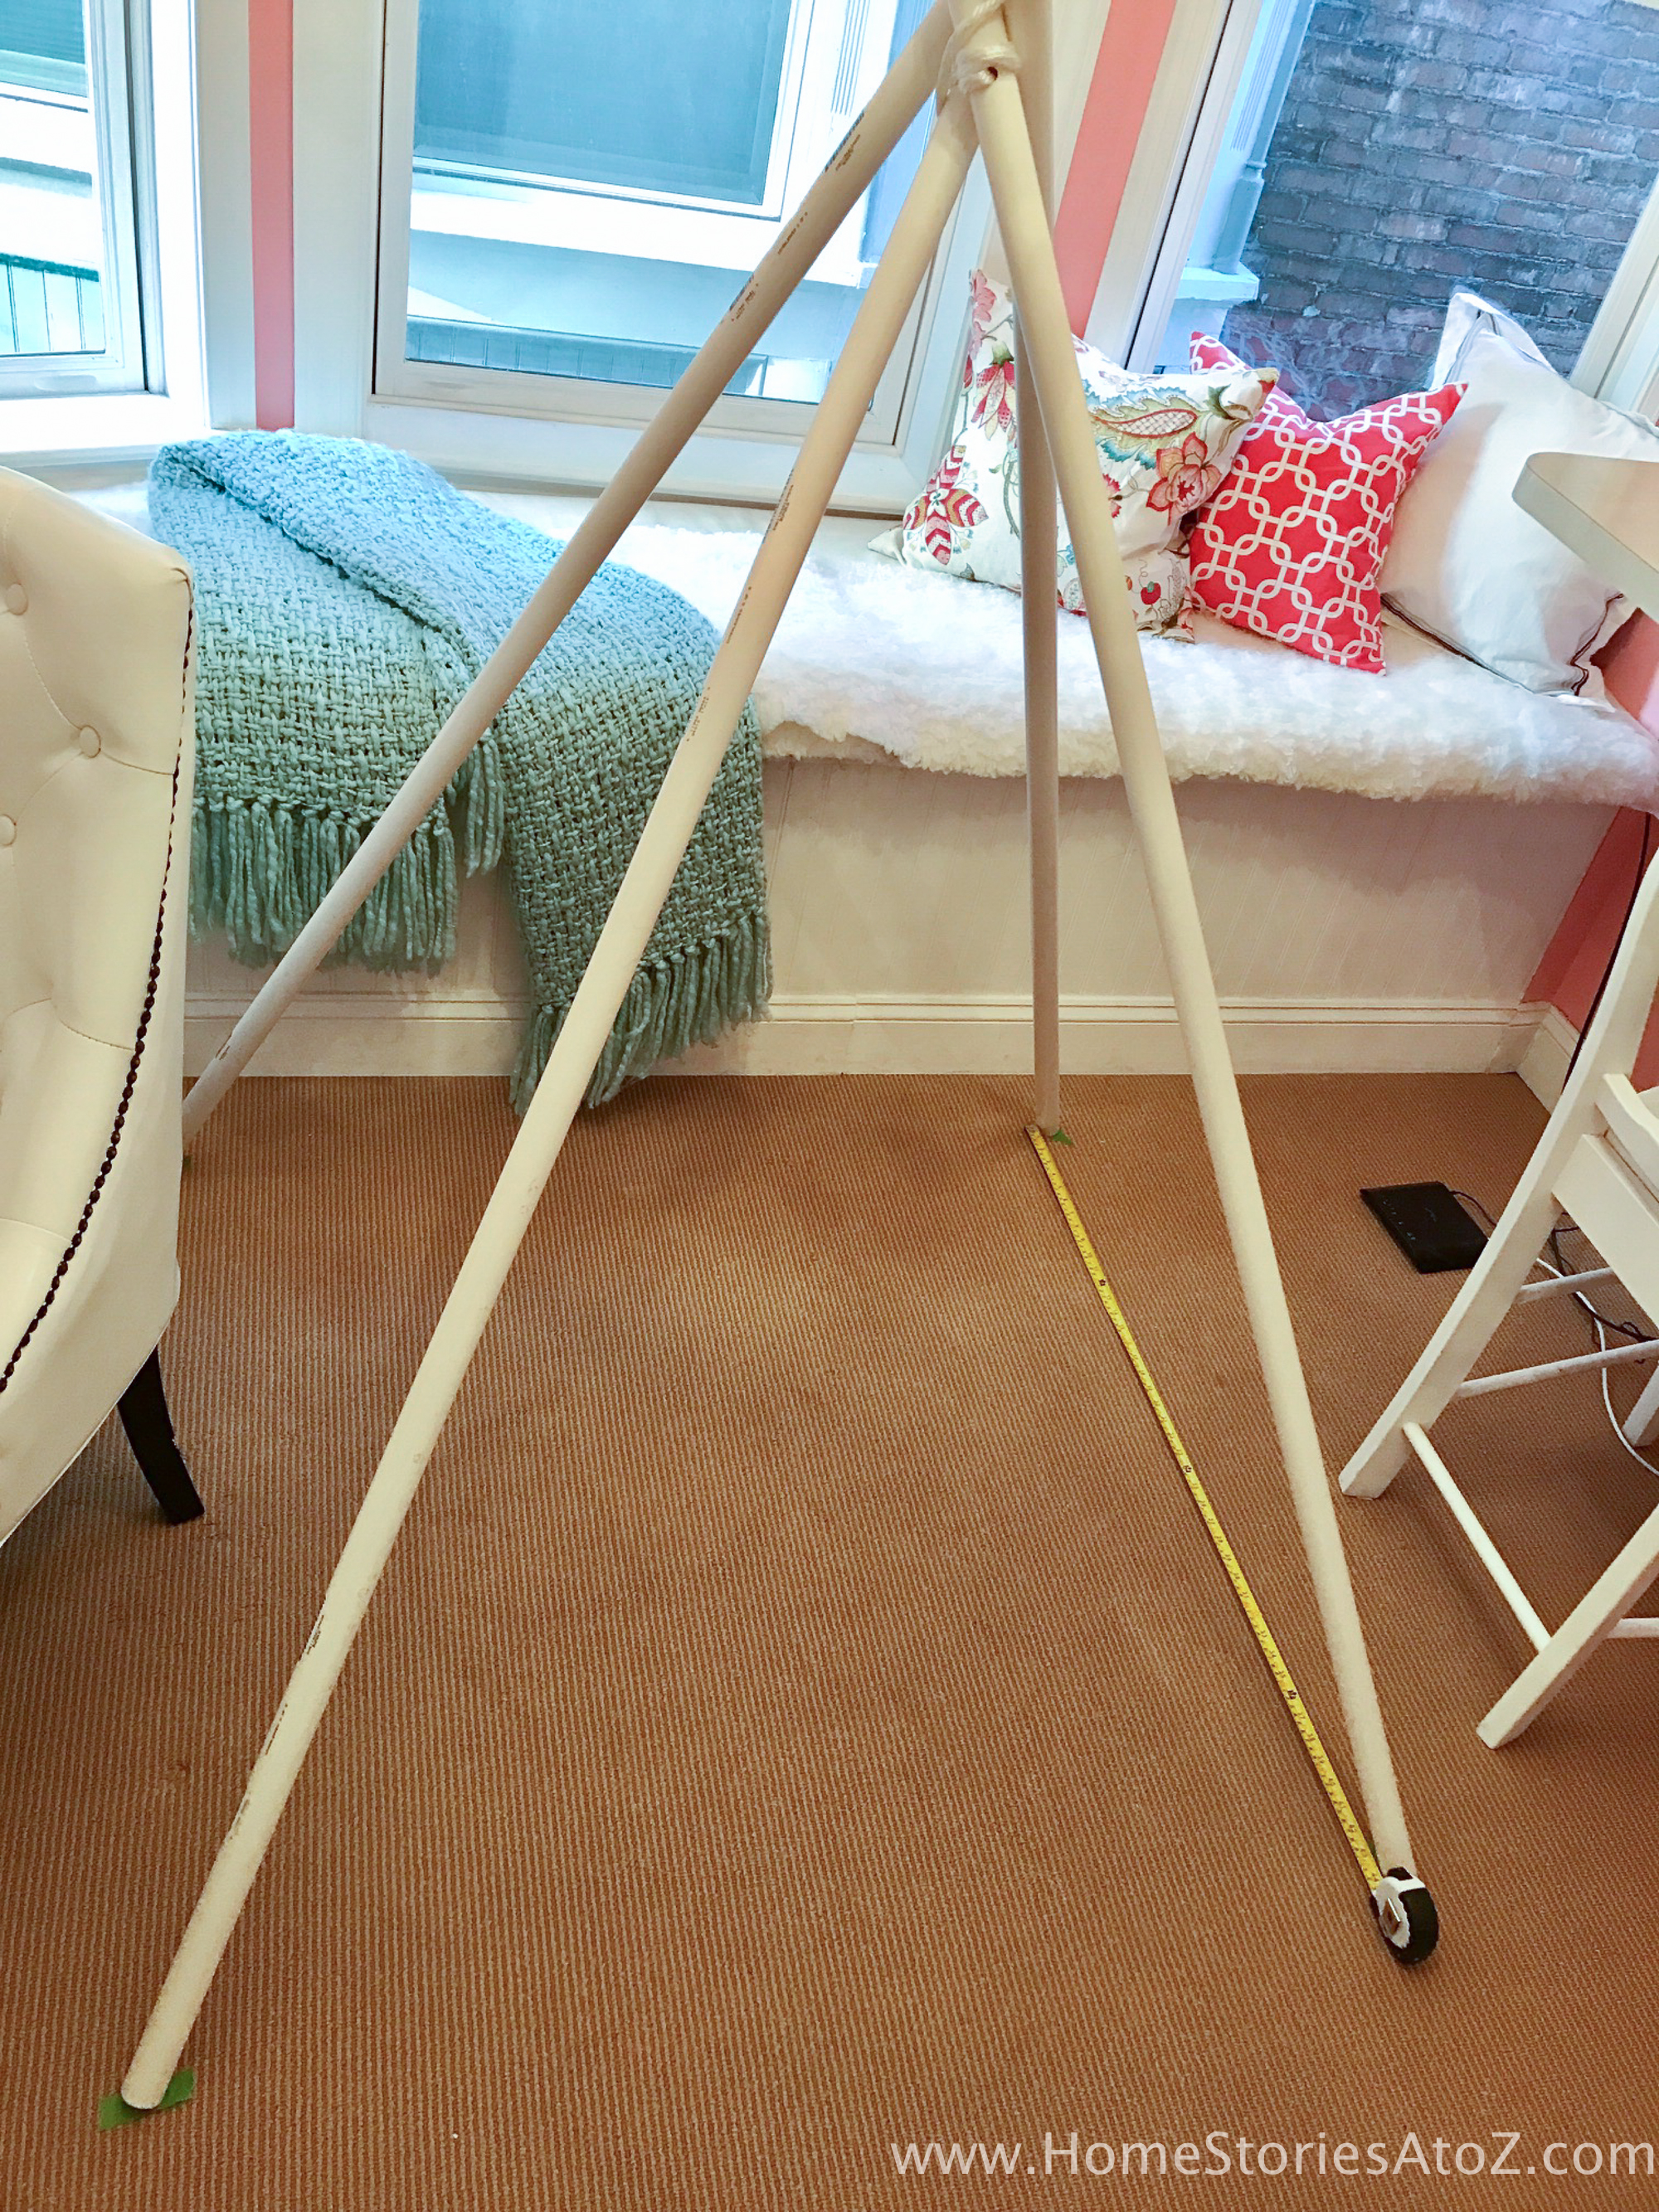 Also, creating your teepee on a rug or on carpet will be much easier than  on wood or tile!